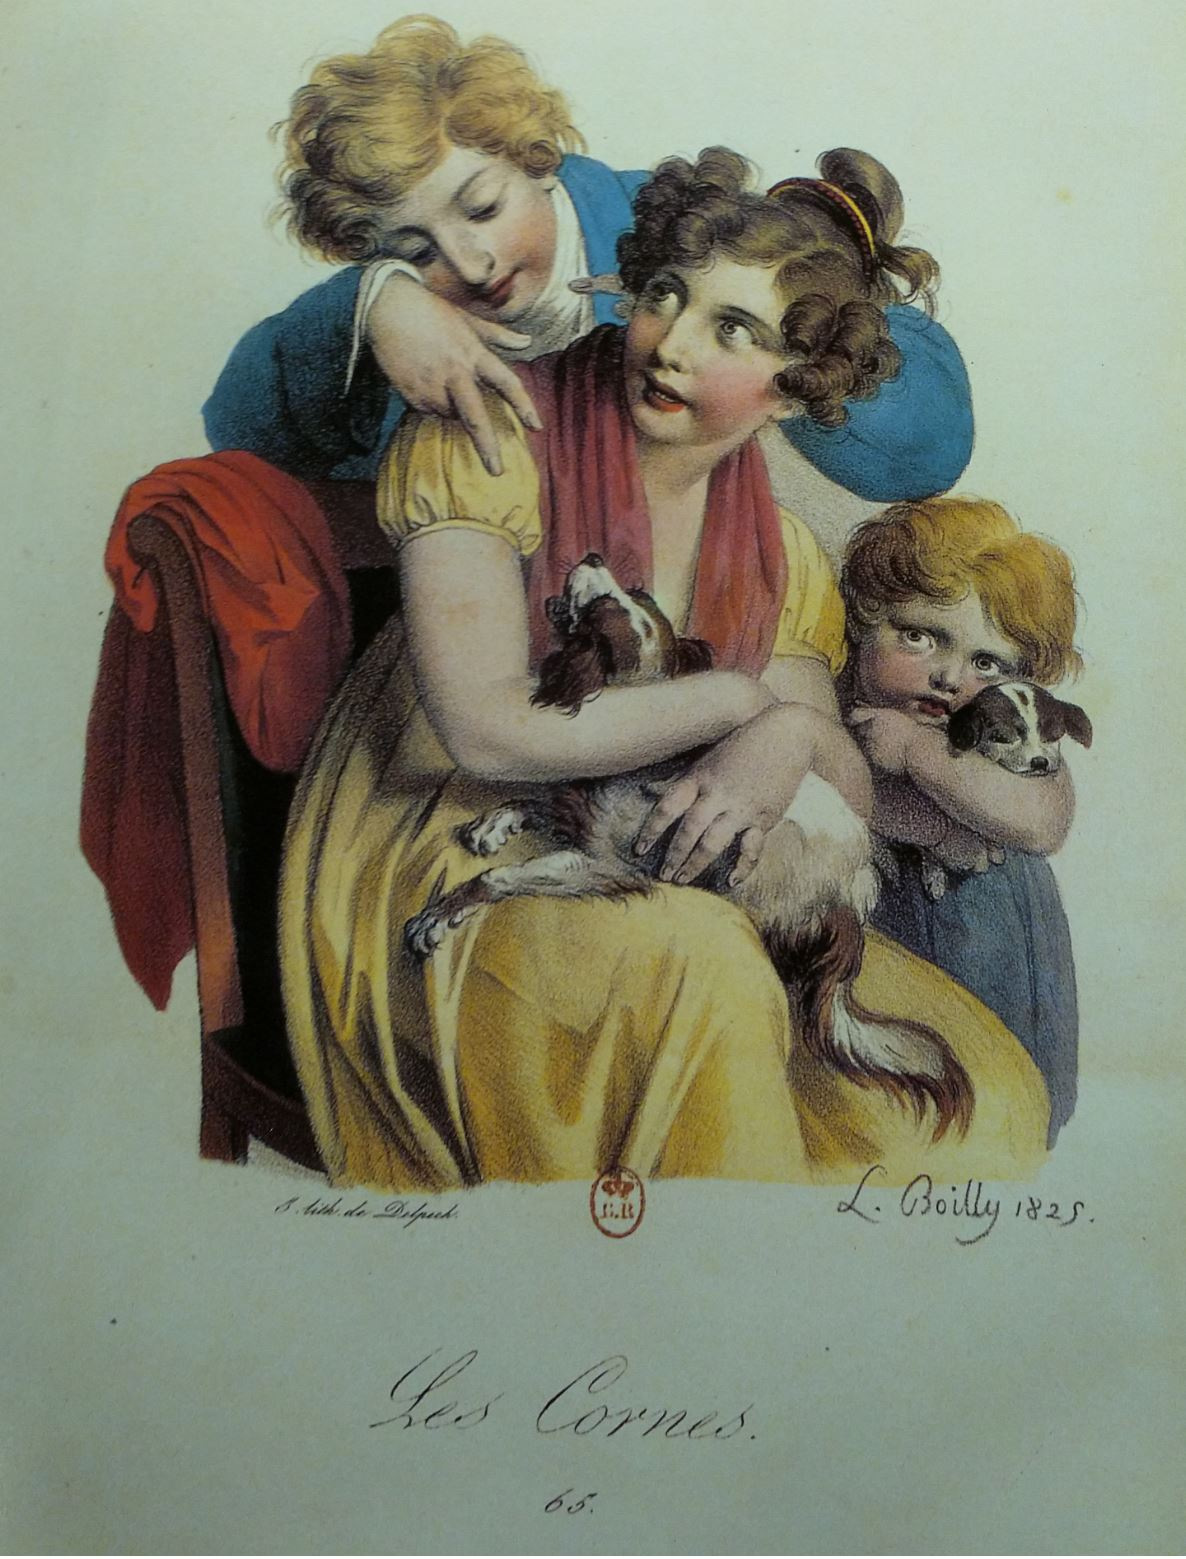 Boilly 1825 Les cornes Les grimaces